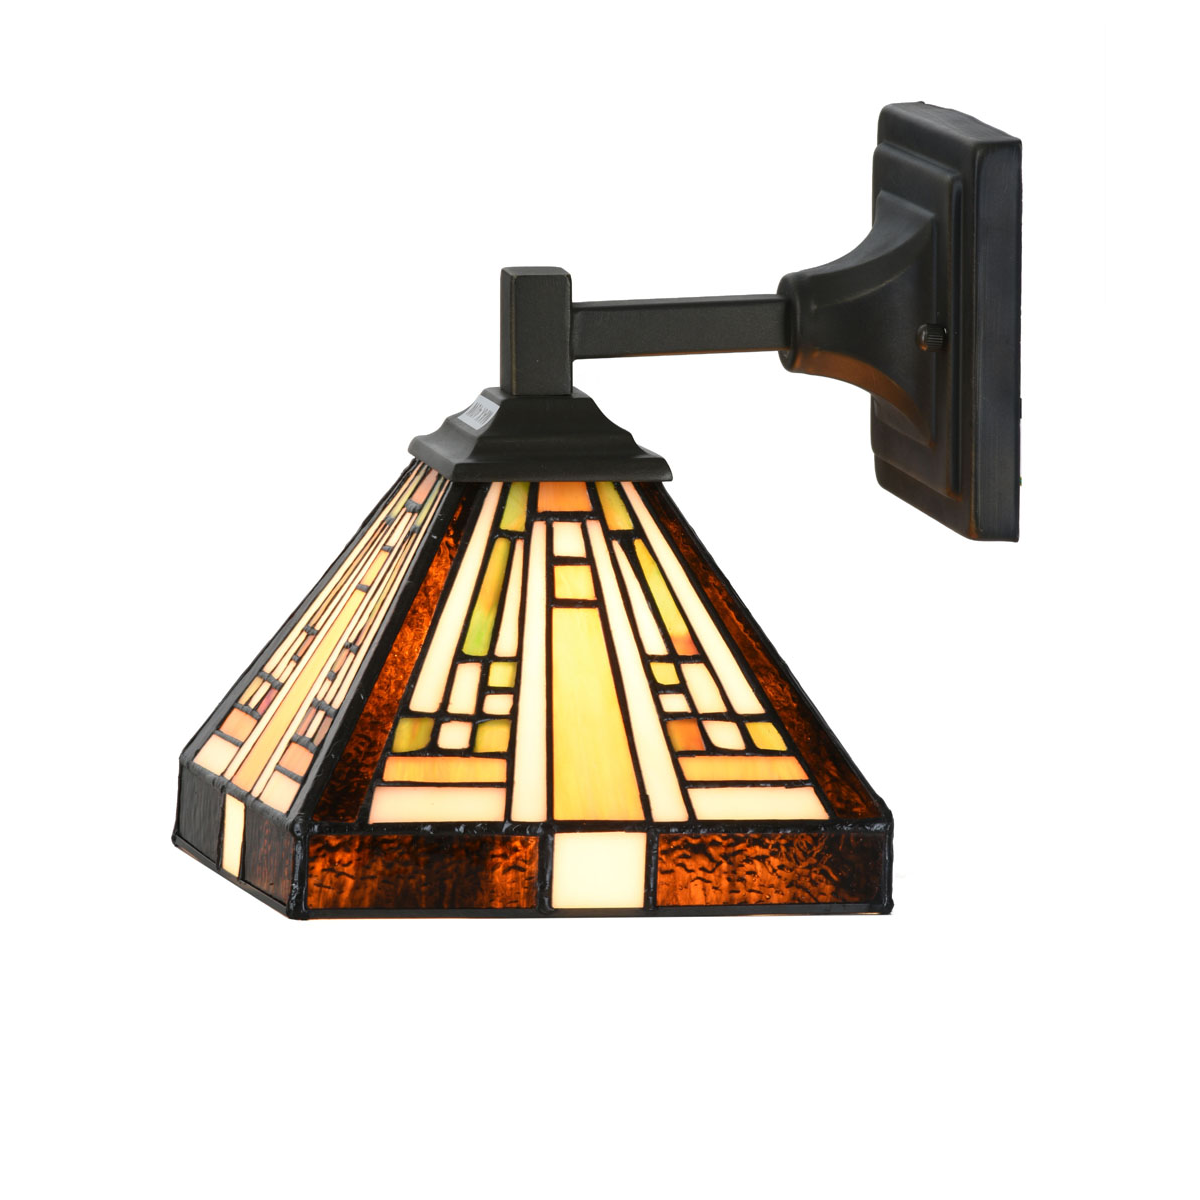 Wall Lamps Tiffany : Wall lamps - - The official tiffany webshop.Tiffany wall lamp 7904-1